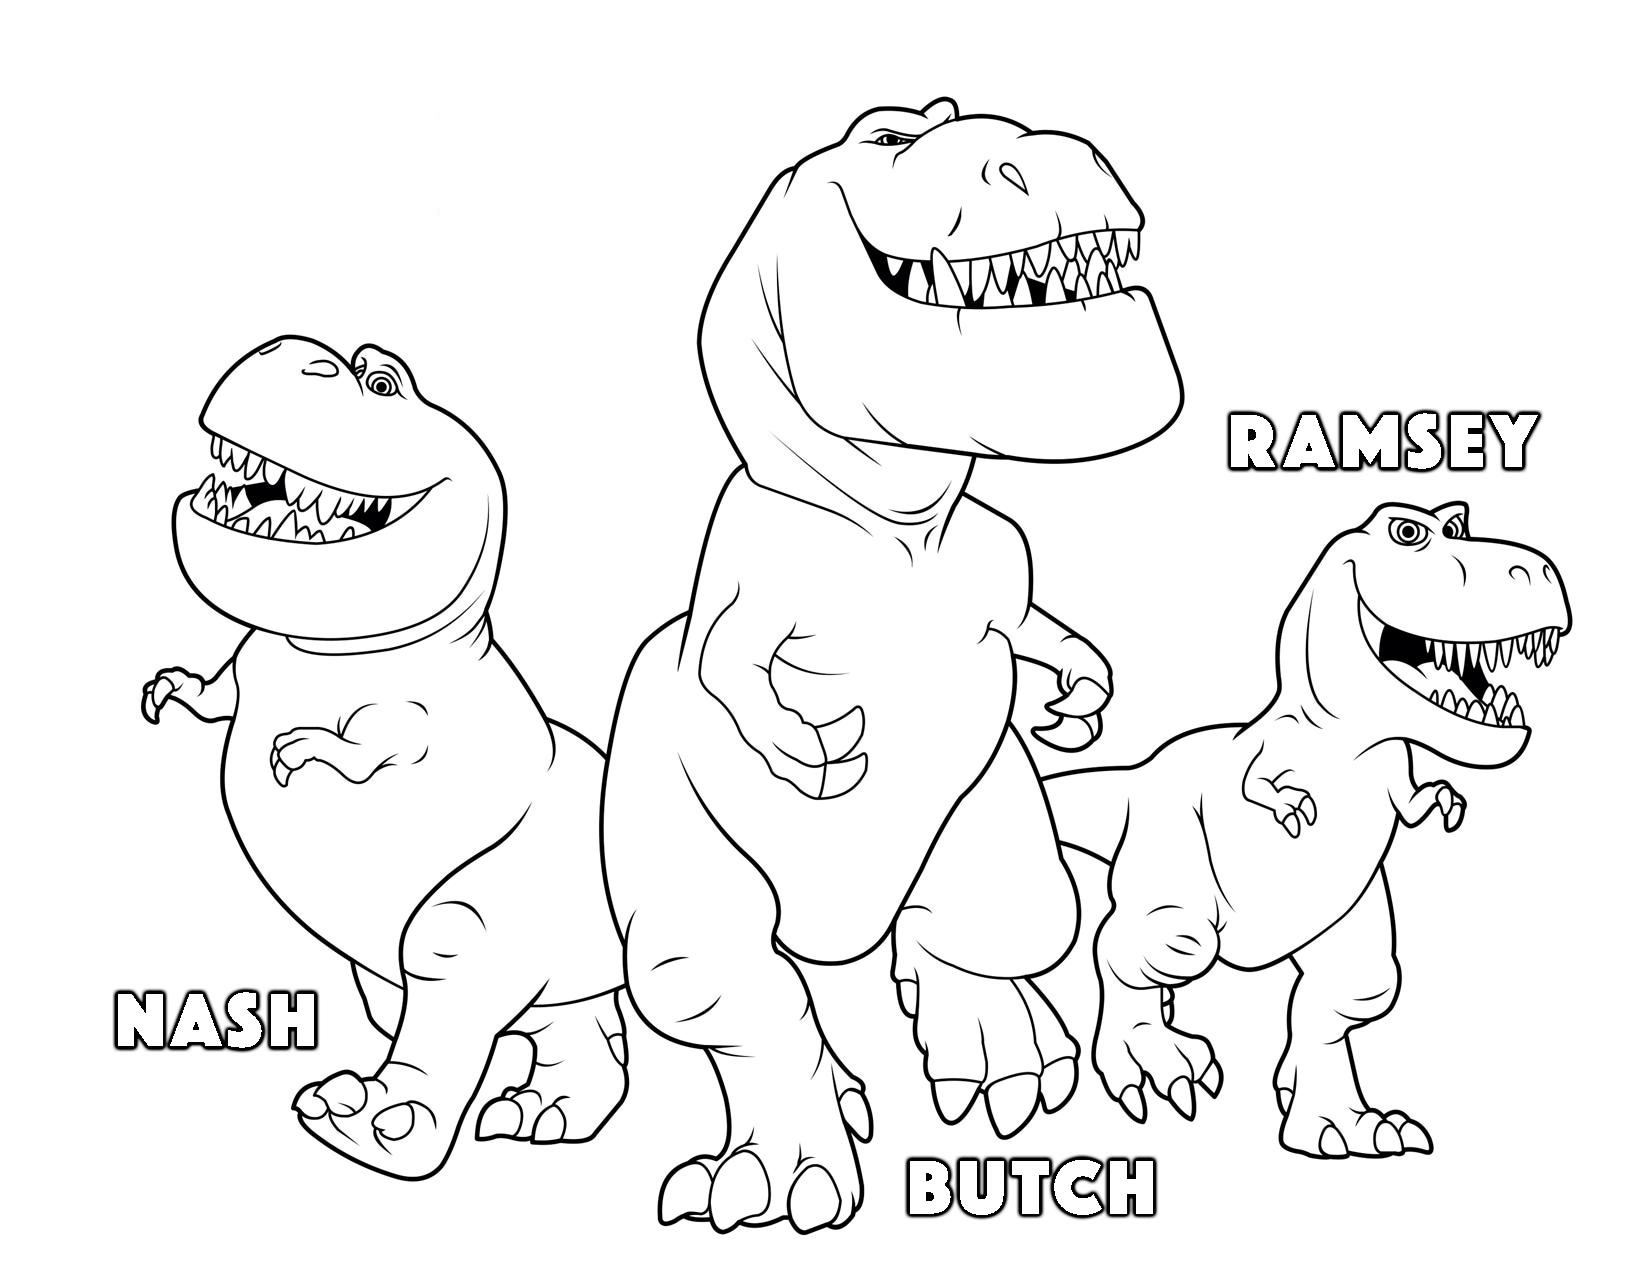 1650x1275 Peachy Ideas Coloring Is Good For Kids The Dinosaur Butch Ramsey